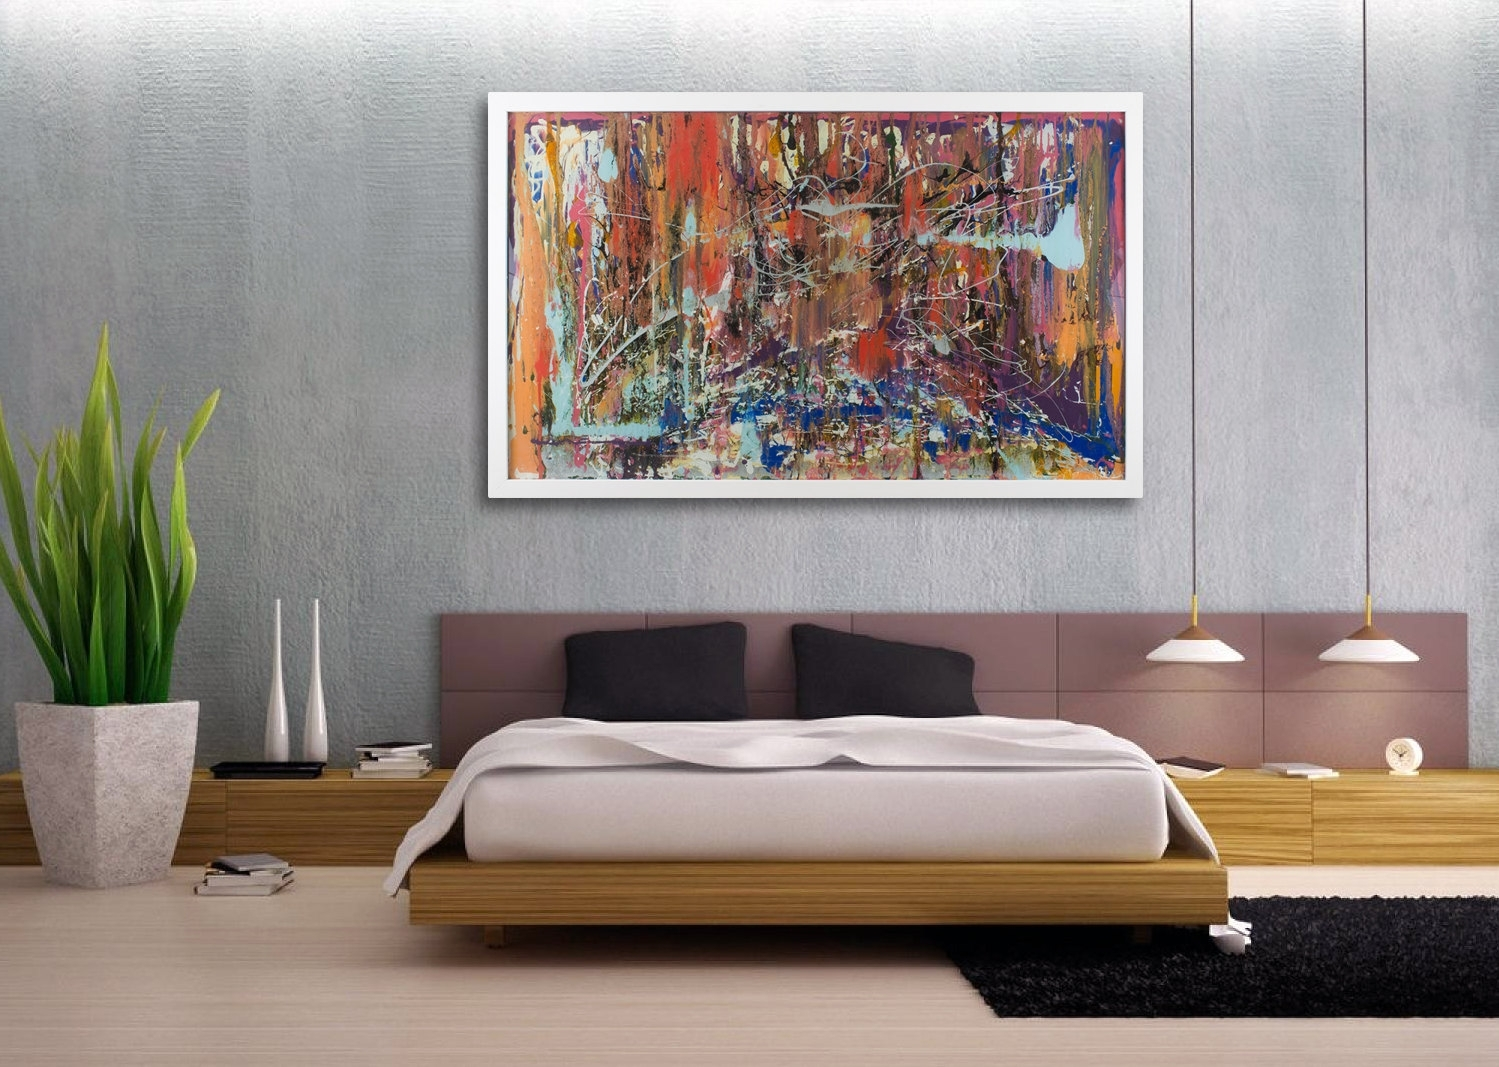 Innovative Way Modern Wall Decor Room — Joanne Russo Homesjoanne With Regard To Most Up To Date Inexpensive Abstract Wall Art (Gallery 9 of 20)